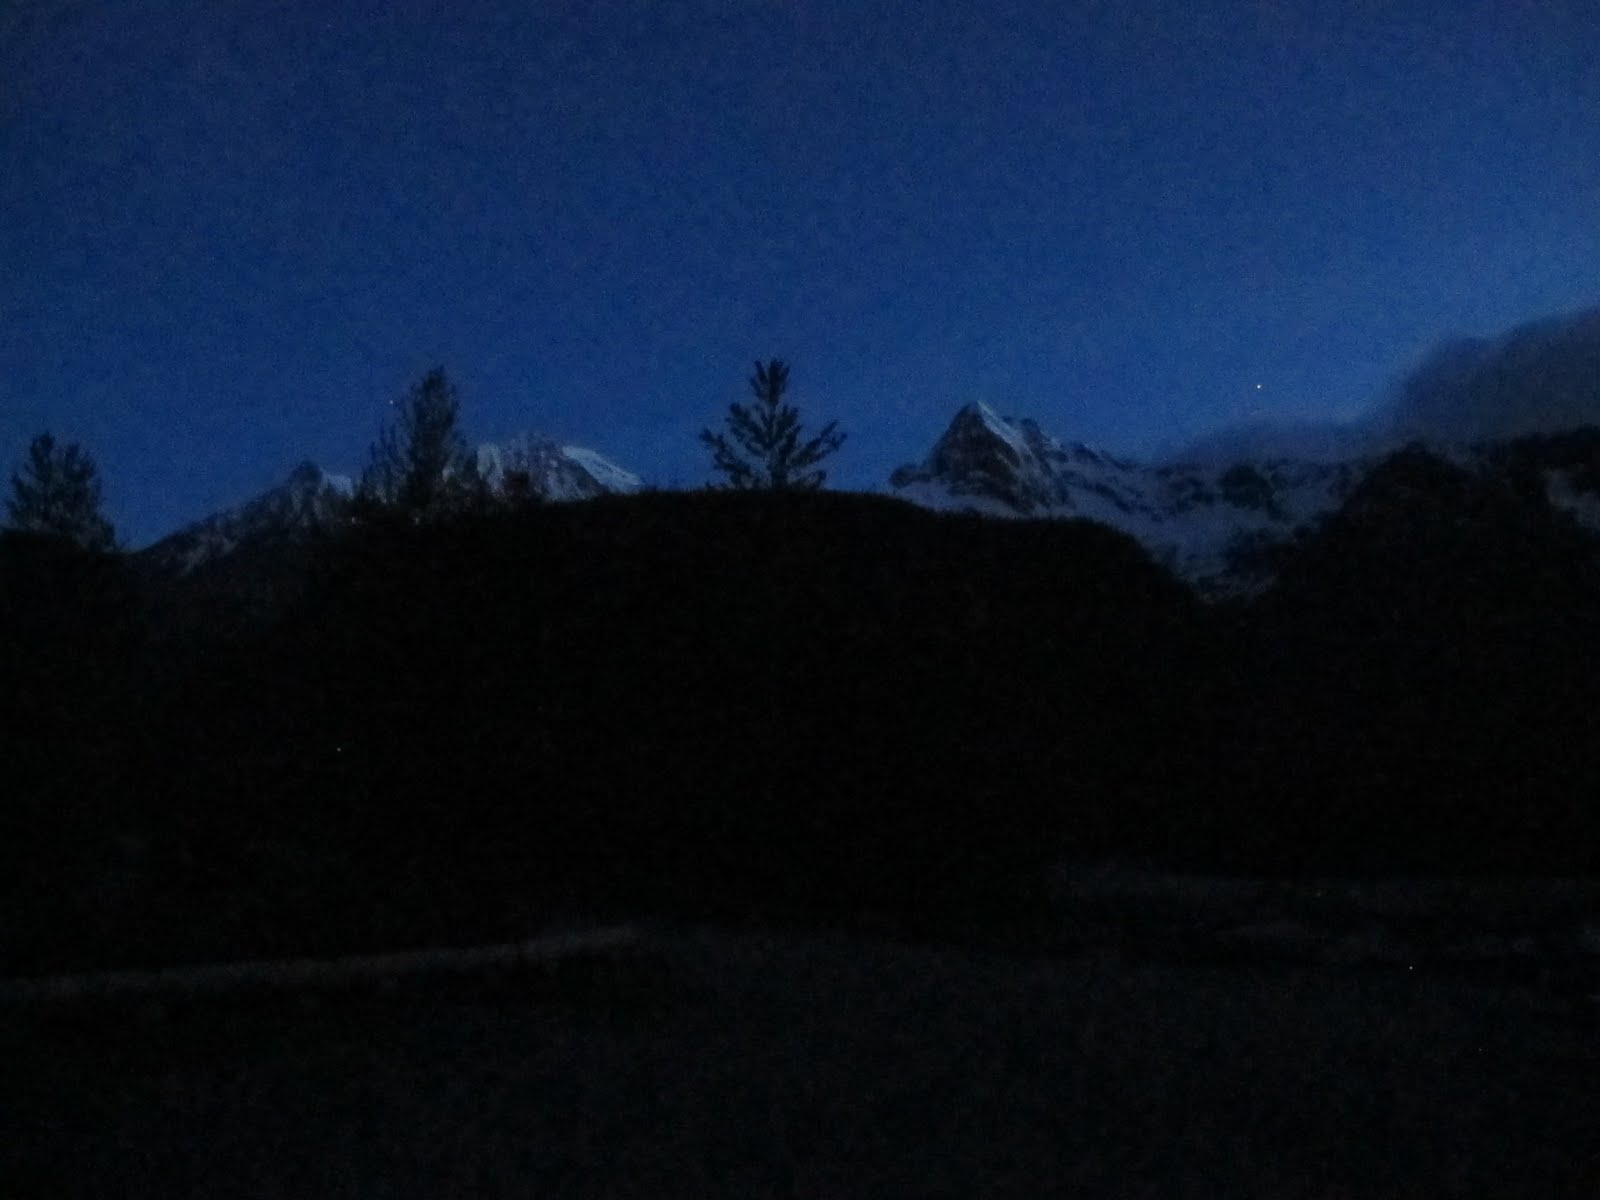 Mountain School at Night